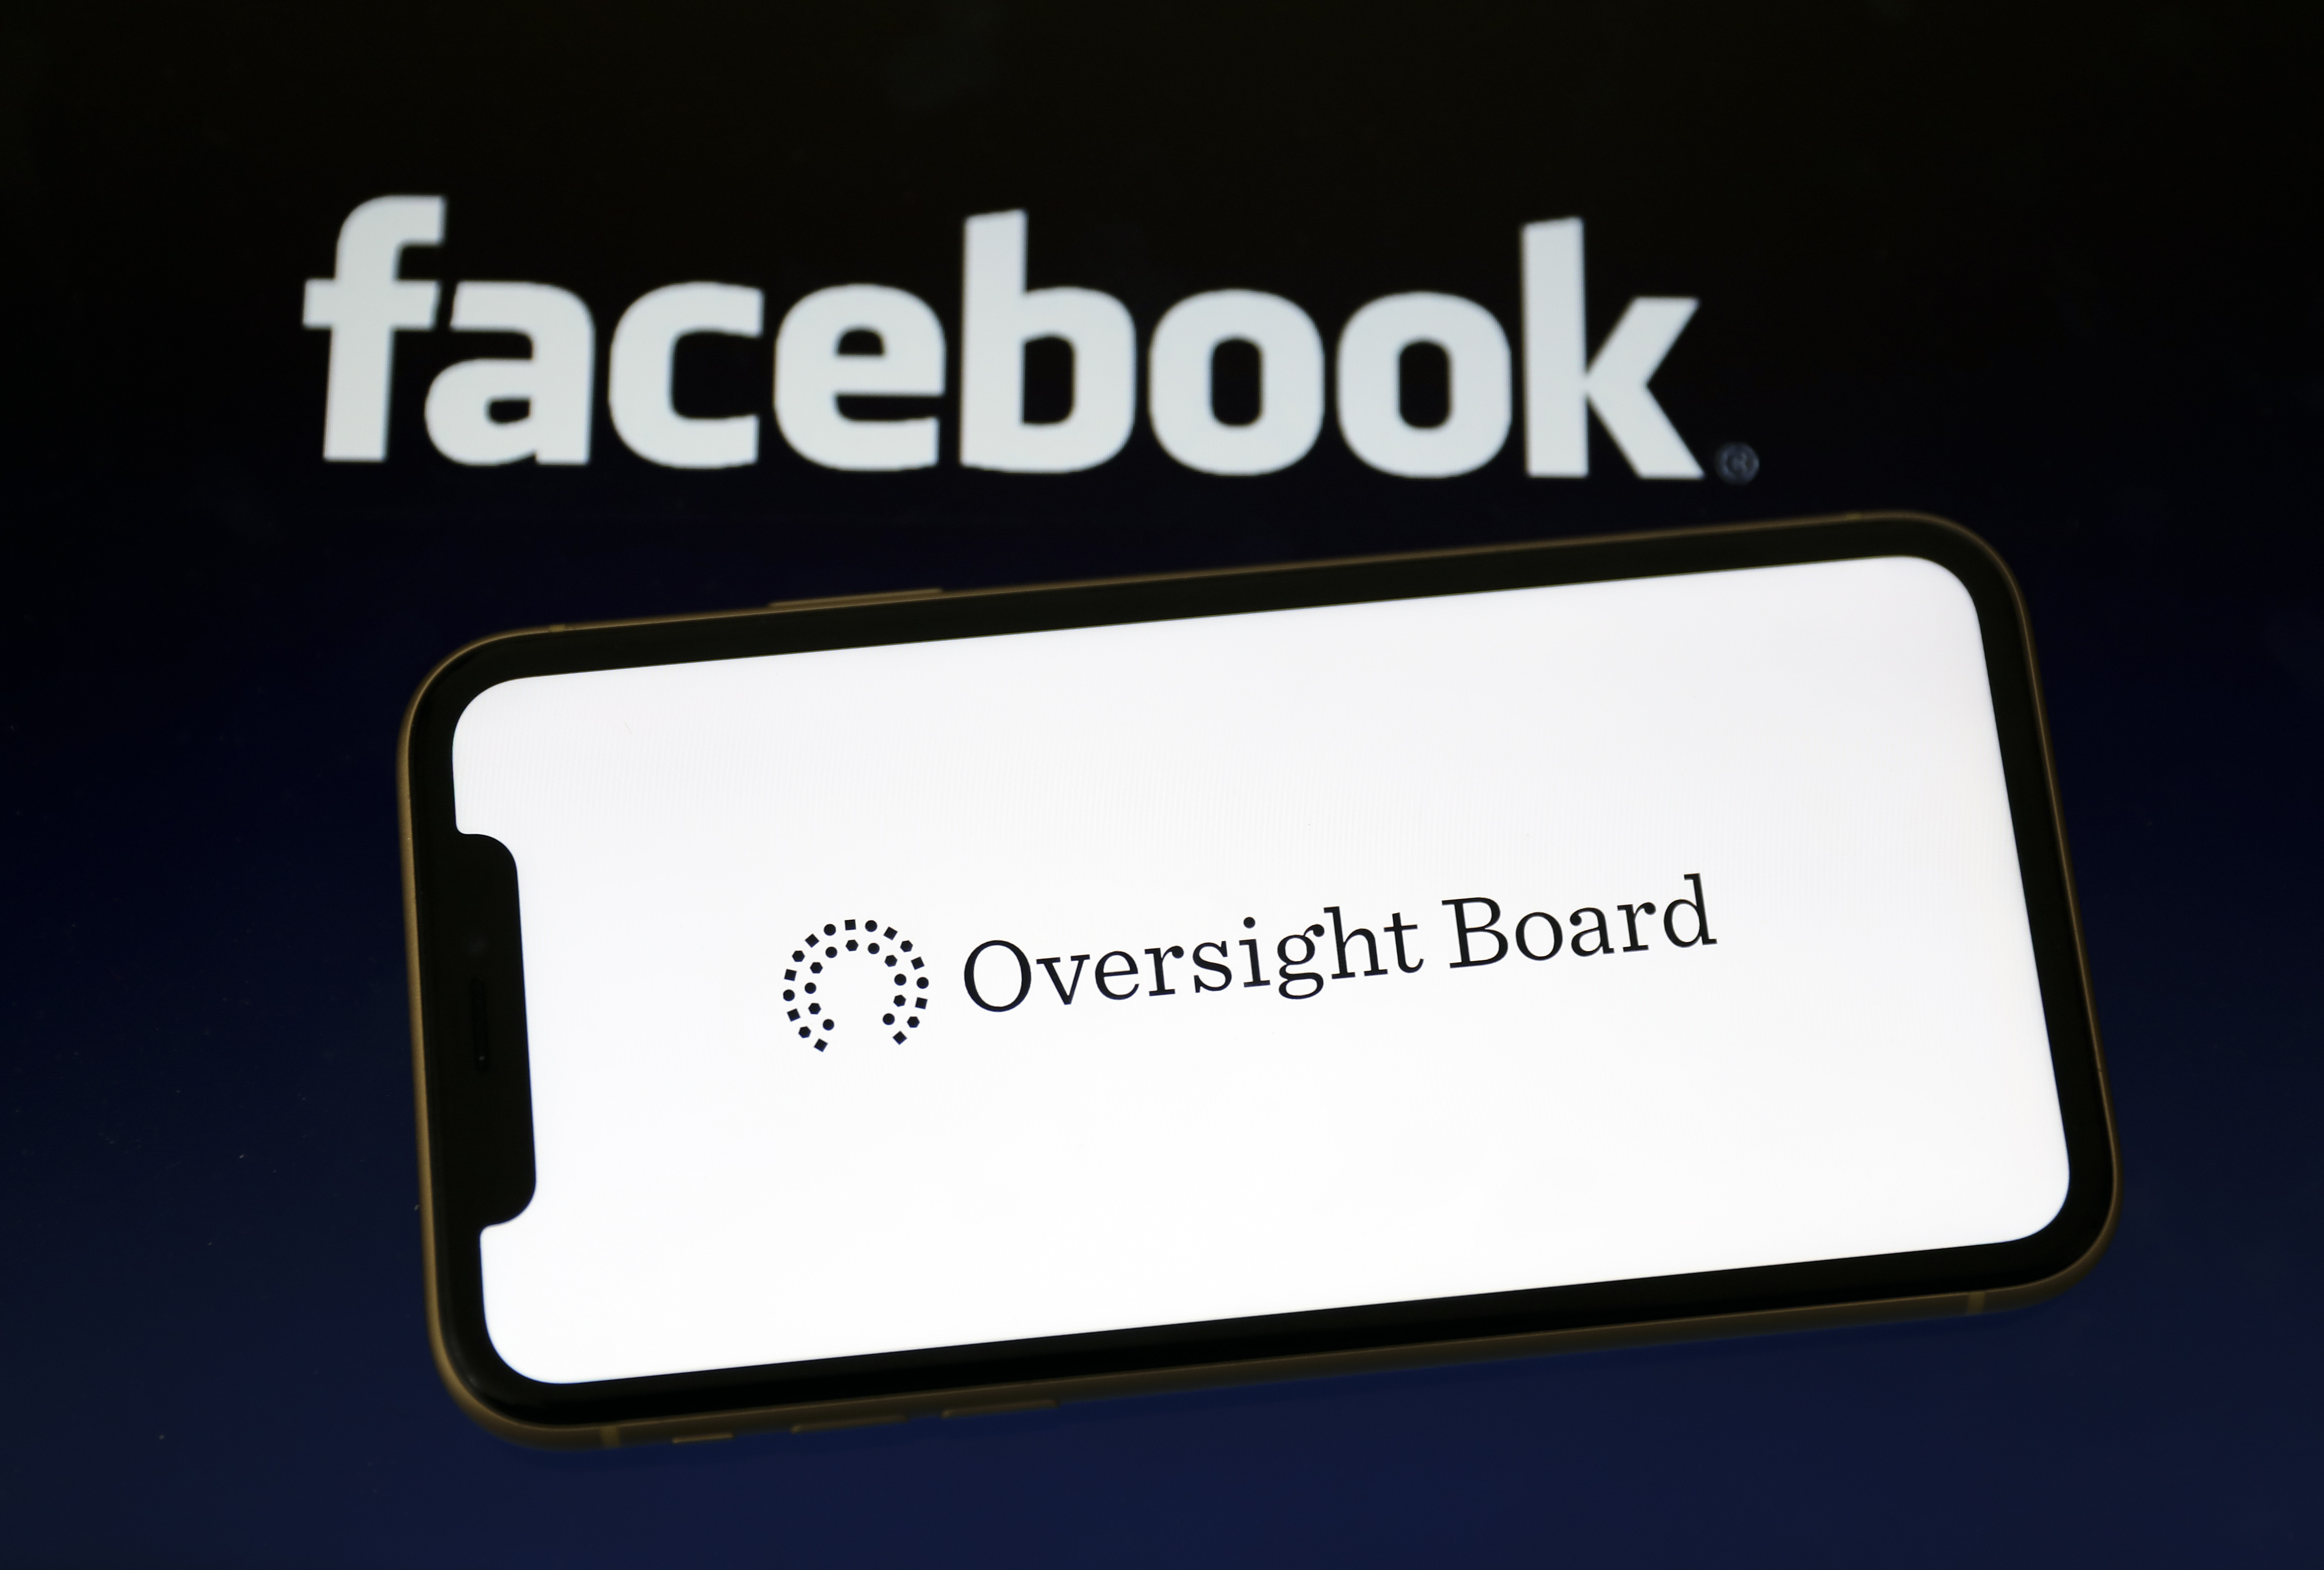 Facebook clarifies hate speech policies following Oversight Board recommendations